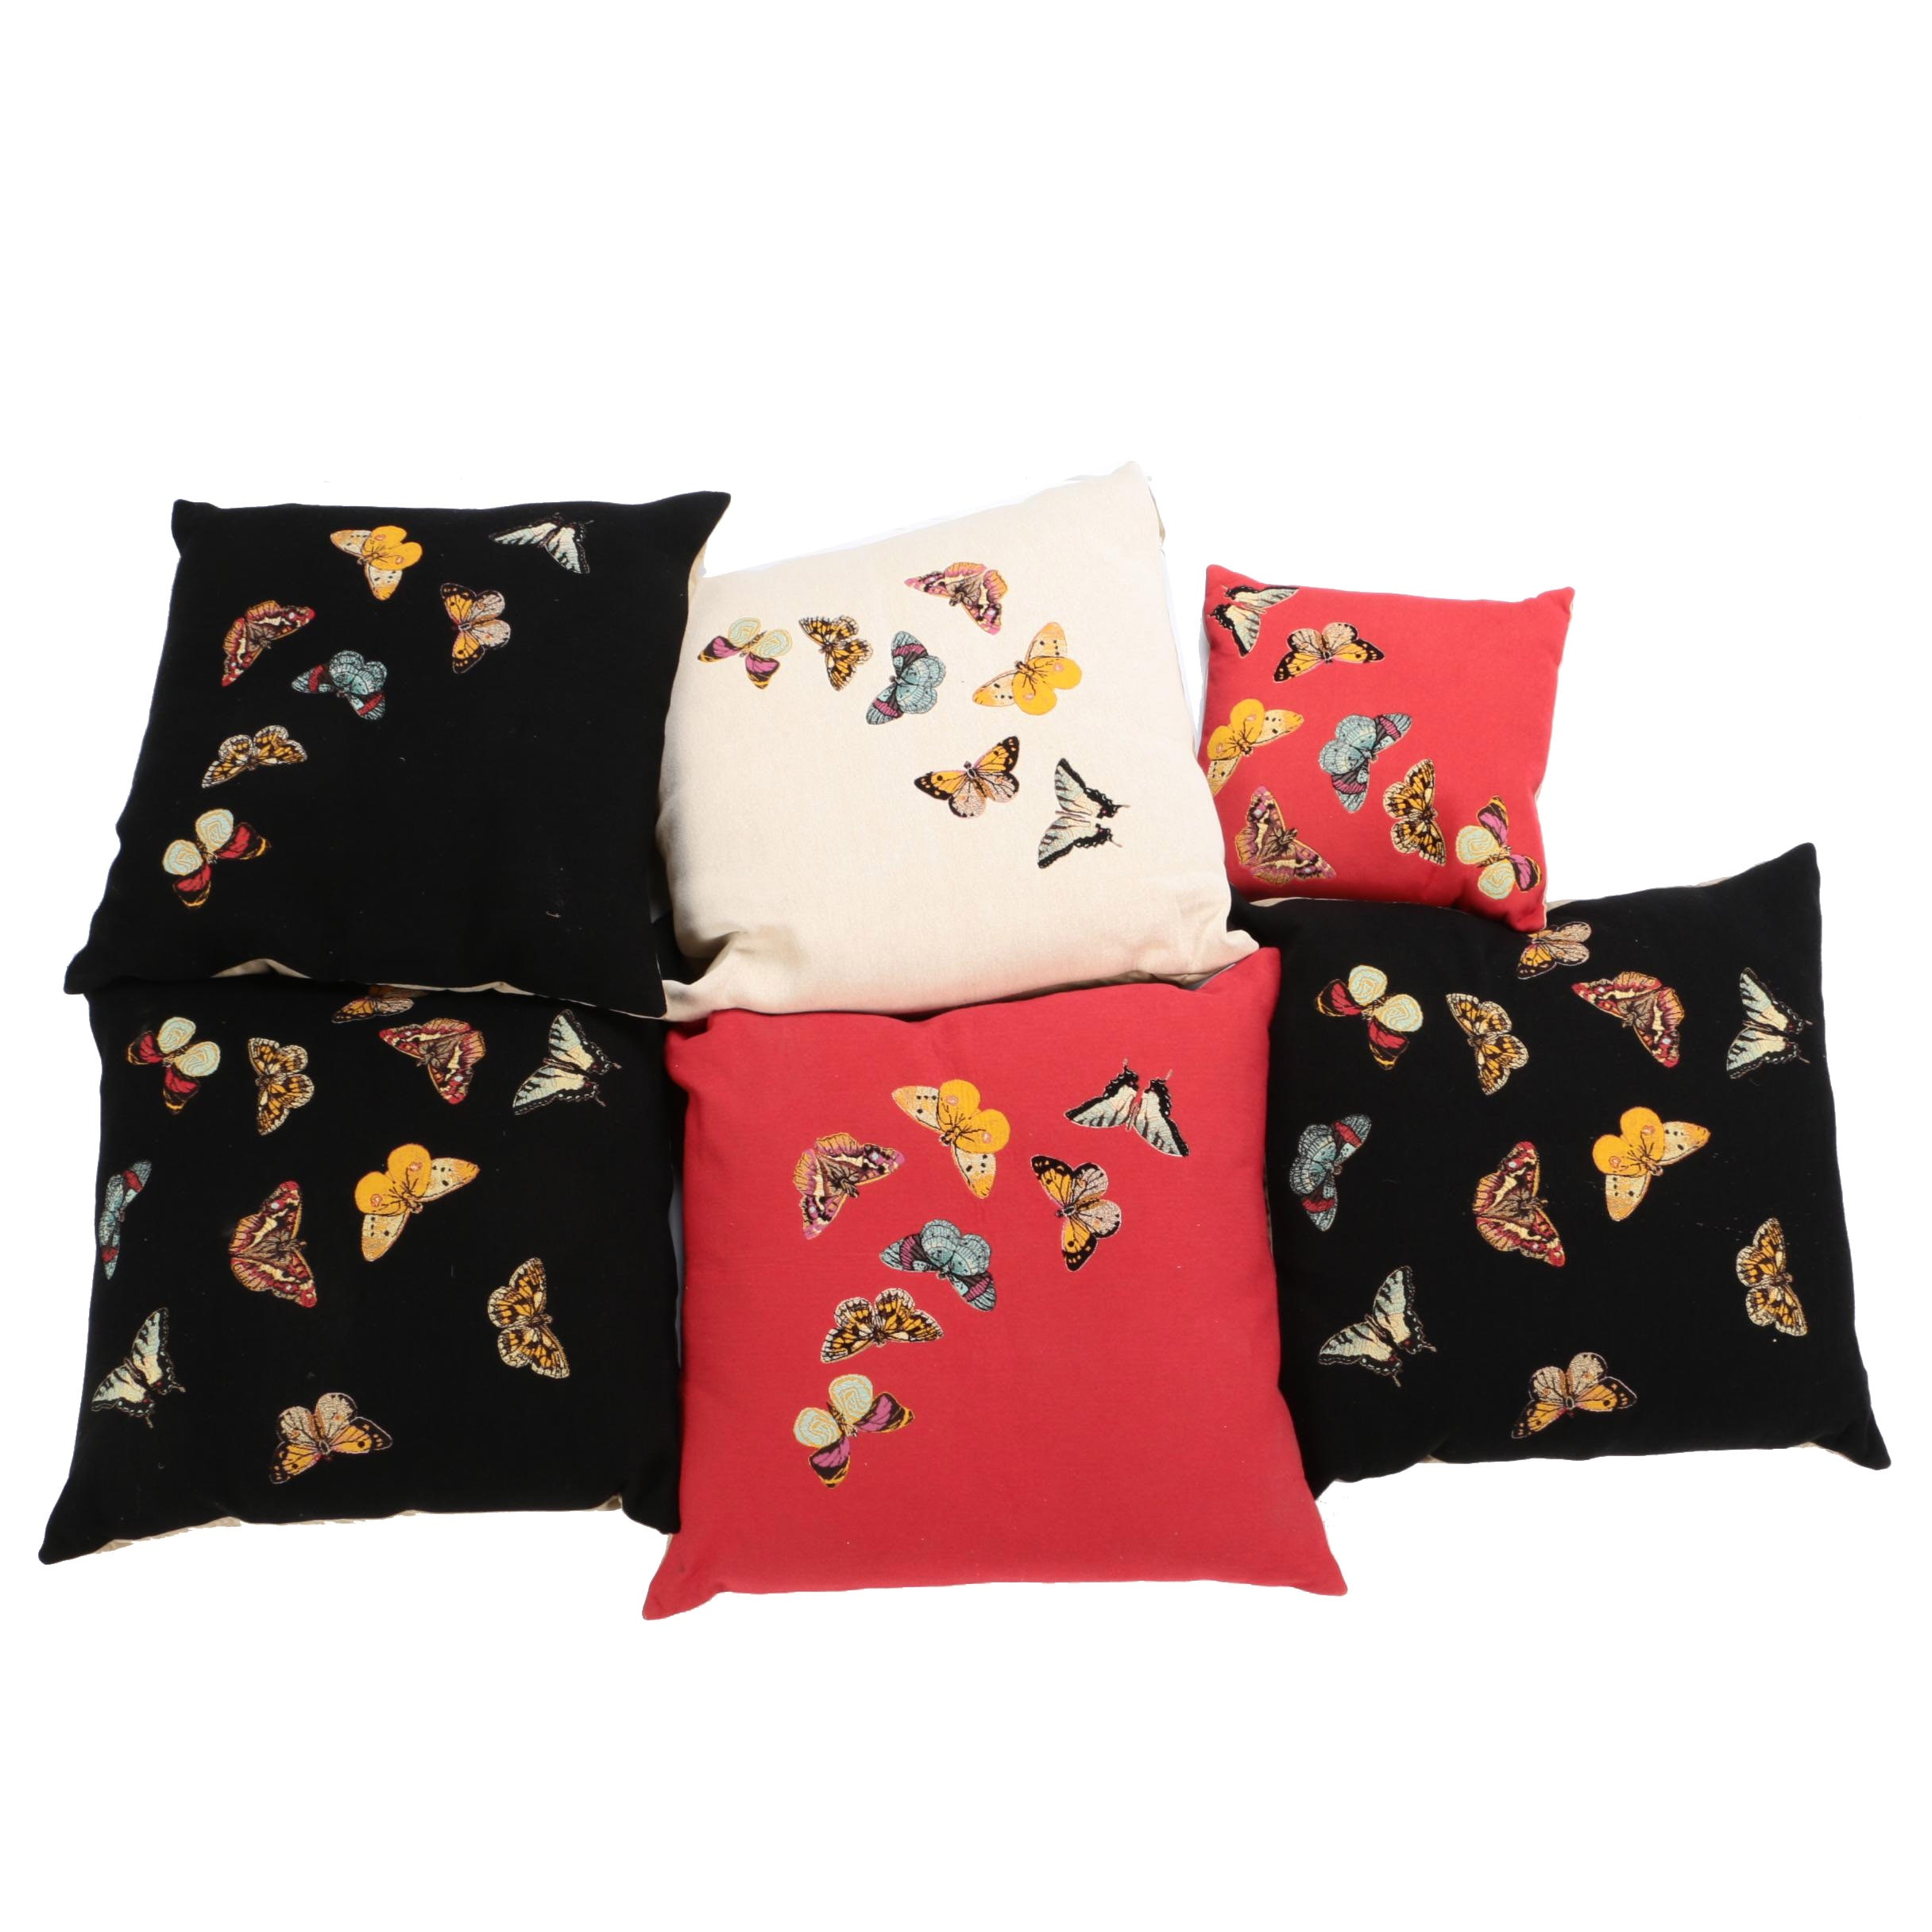 Butterfly Motif Jacquard Woven Throw Pillows with Feather Inserts